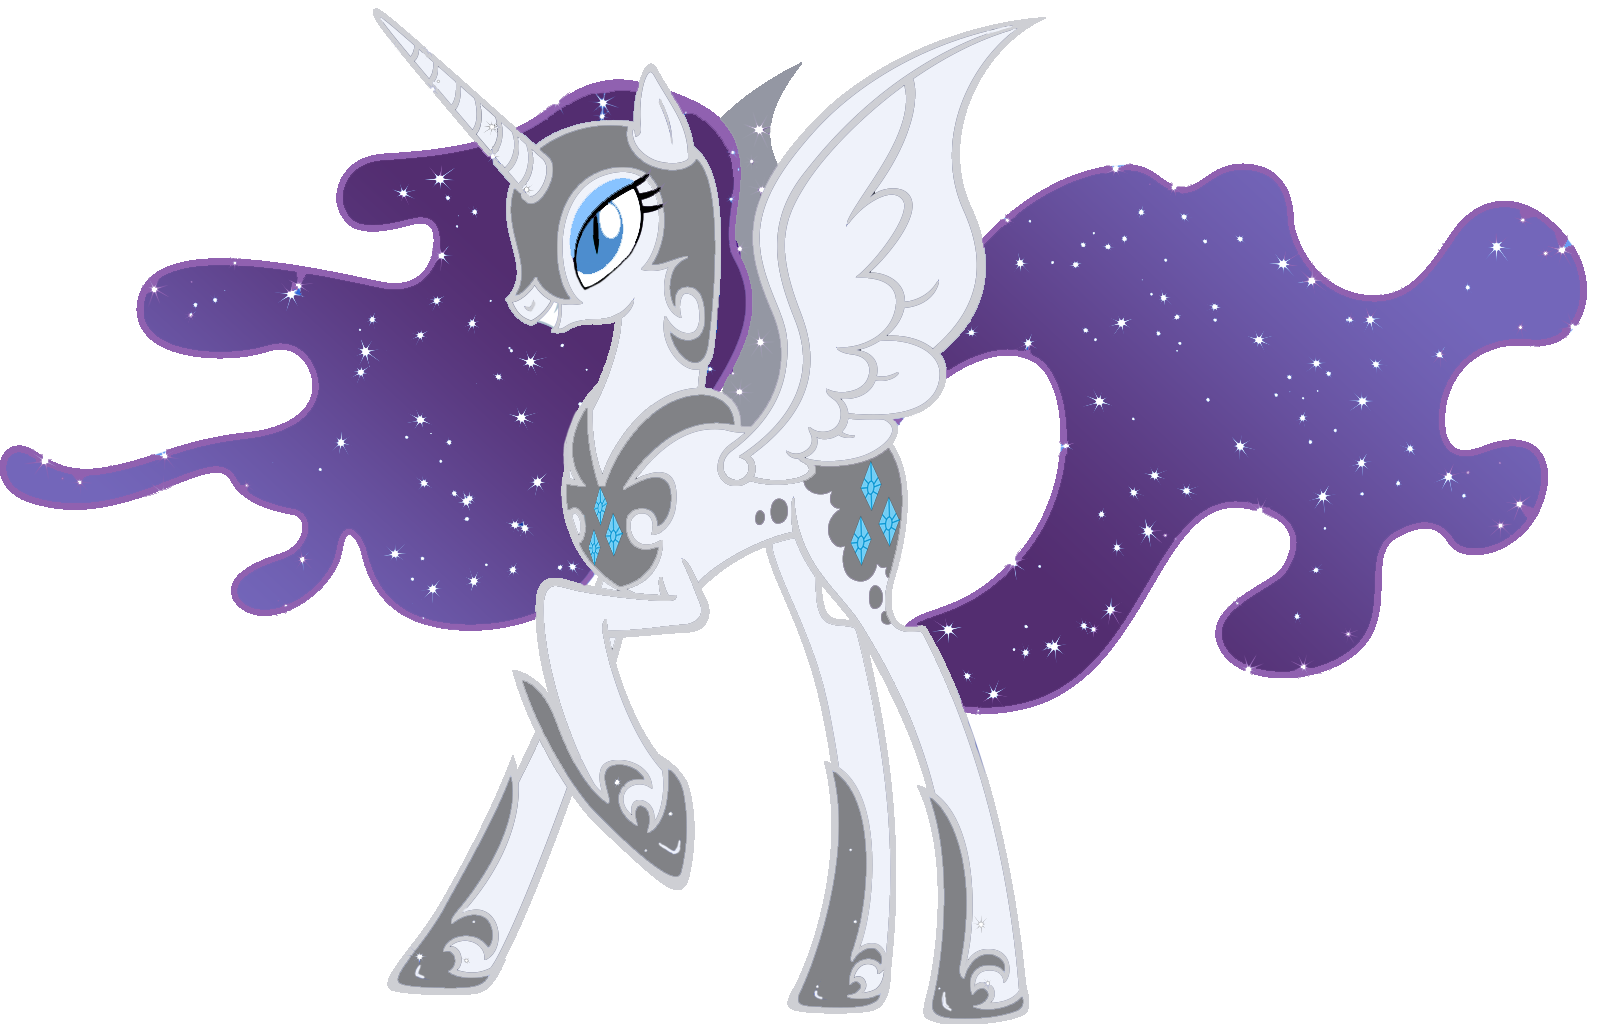 Nightmare moon coloring page - Post 124 0 07625800 1331881113_thumb Png